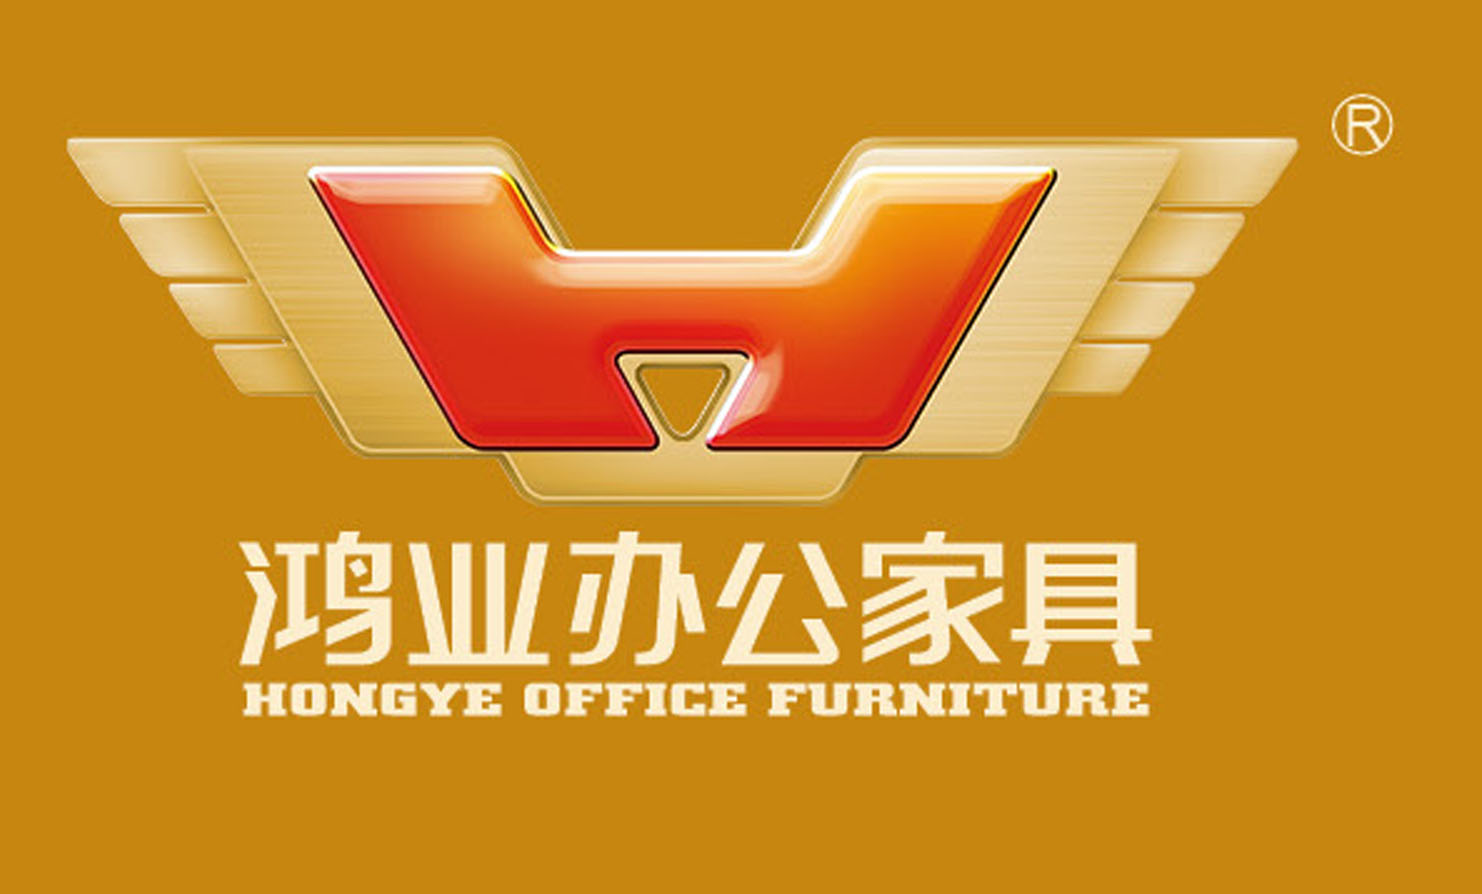 top brand furniture manufacturers. hong ye office furniture top brand manufacturers